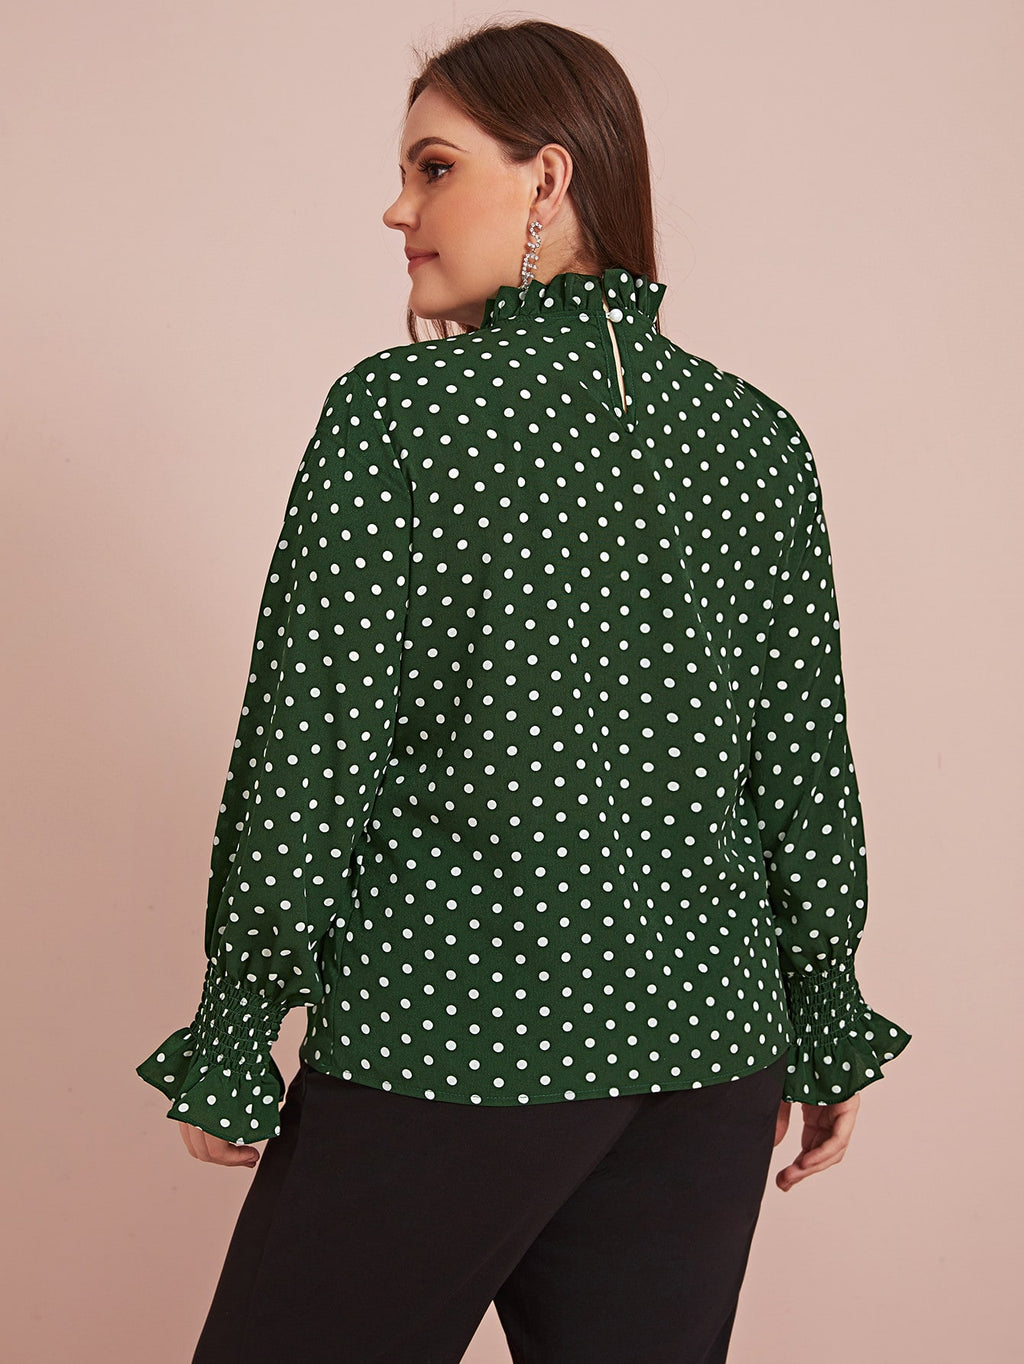 Plus Size Holiday Polka Dot Frill Blouse Top